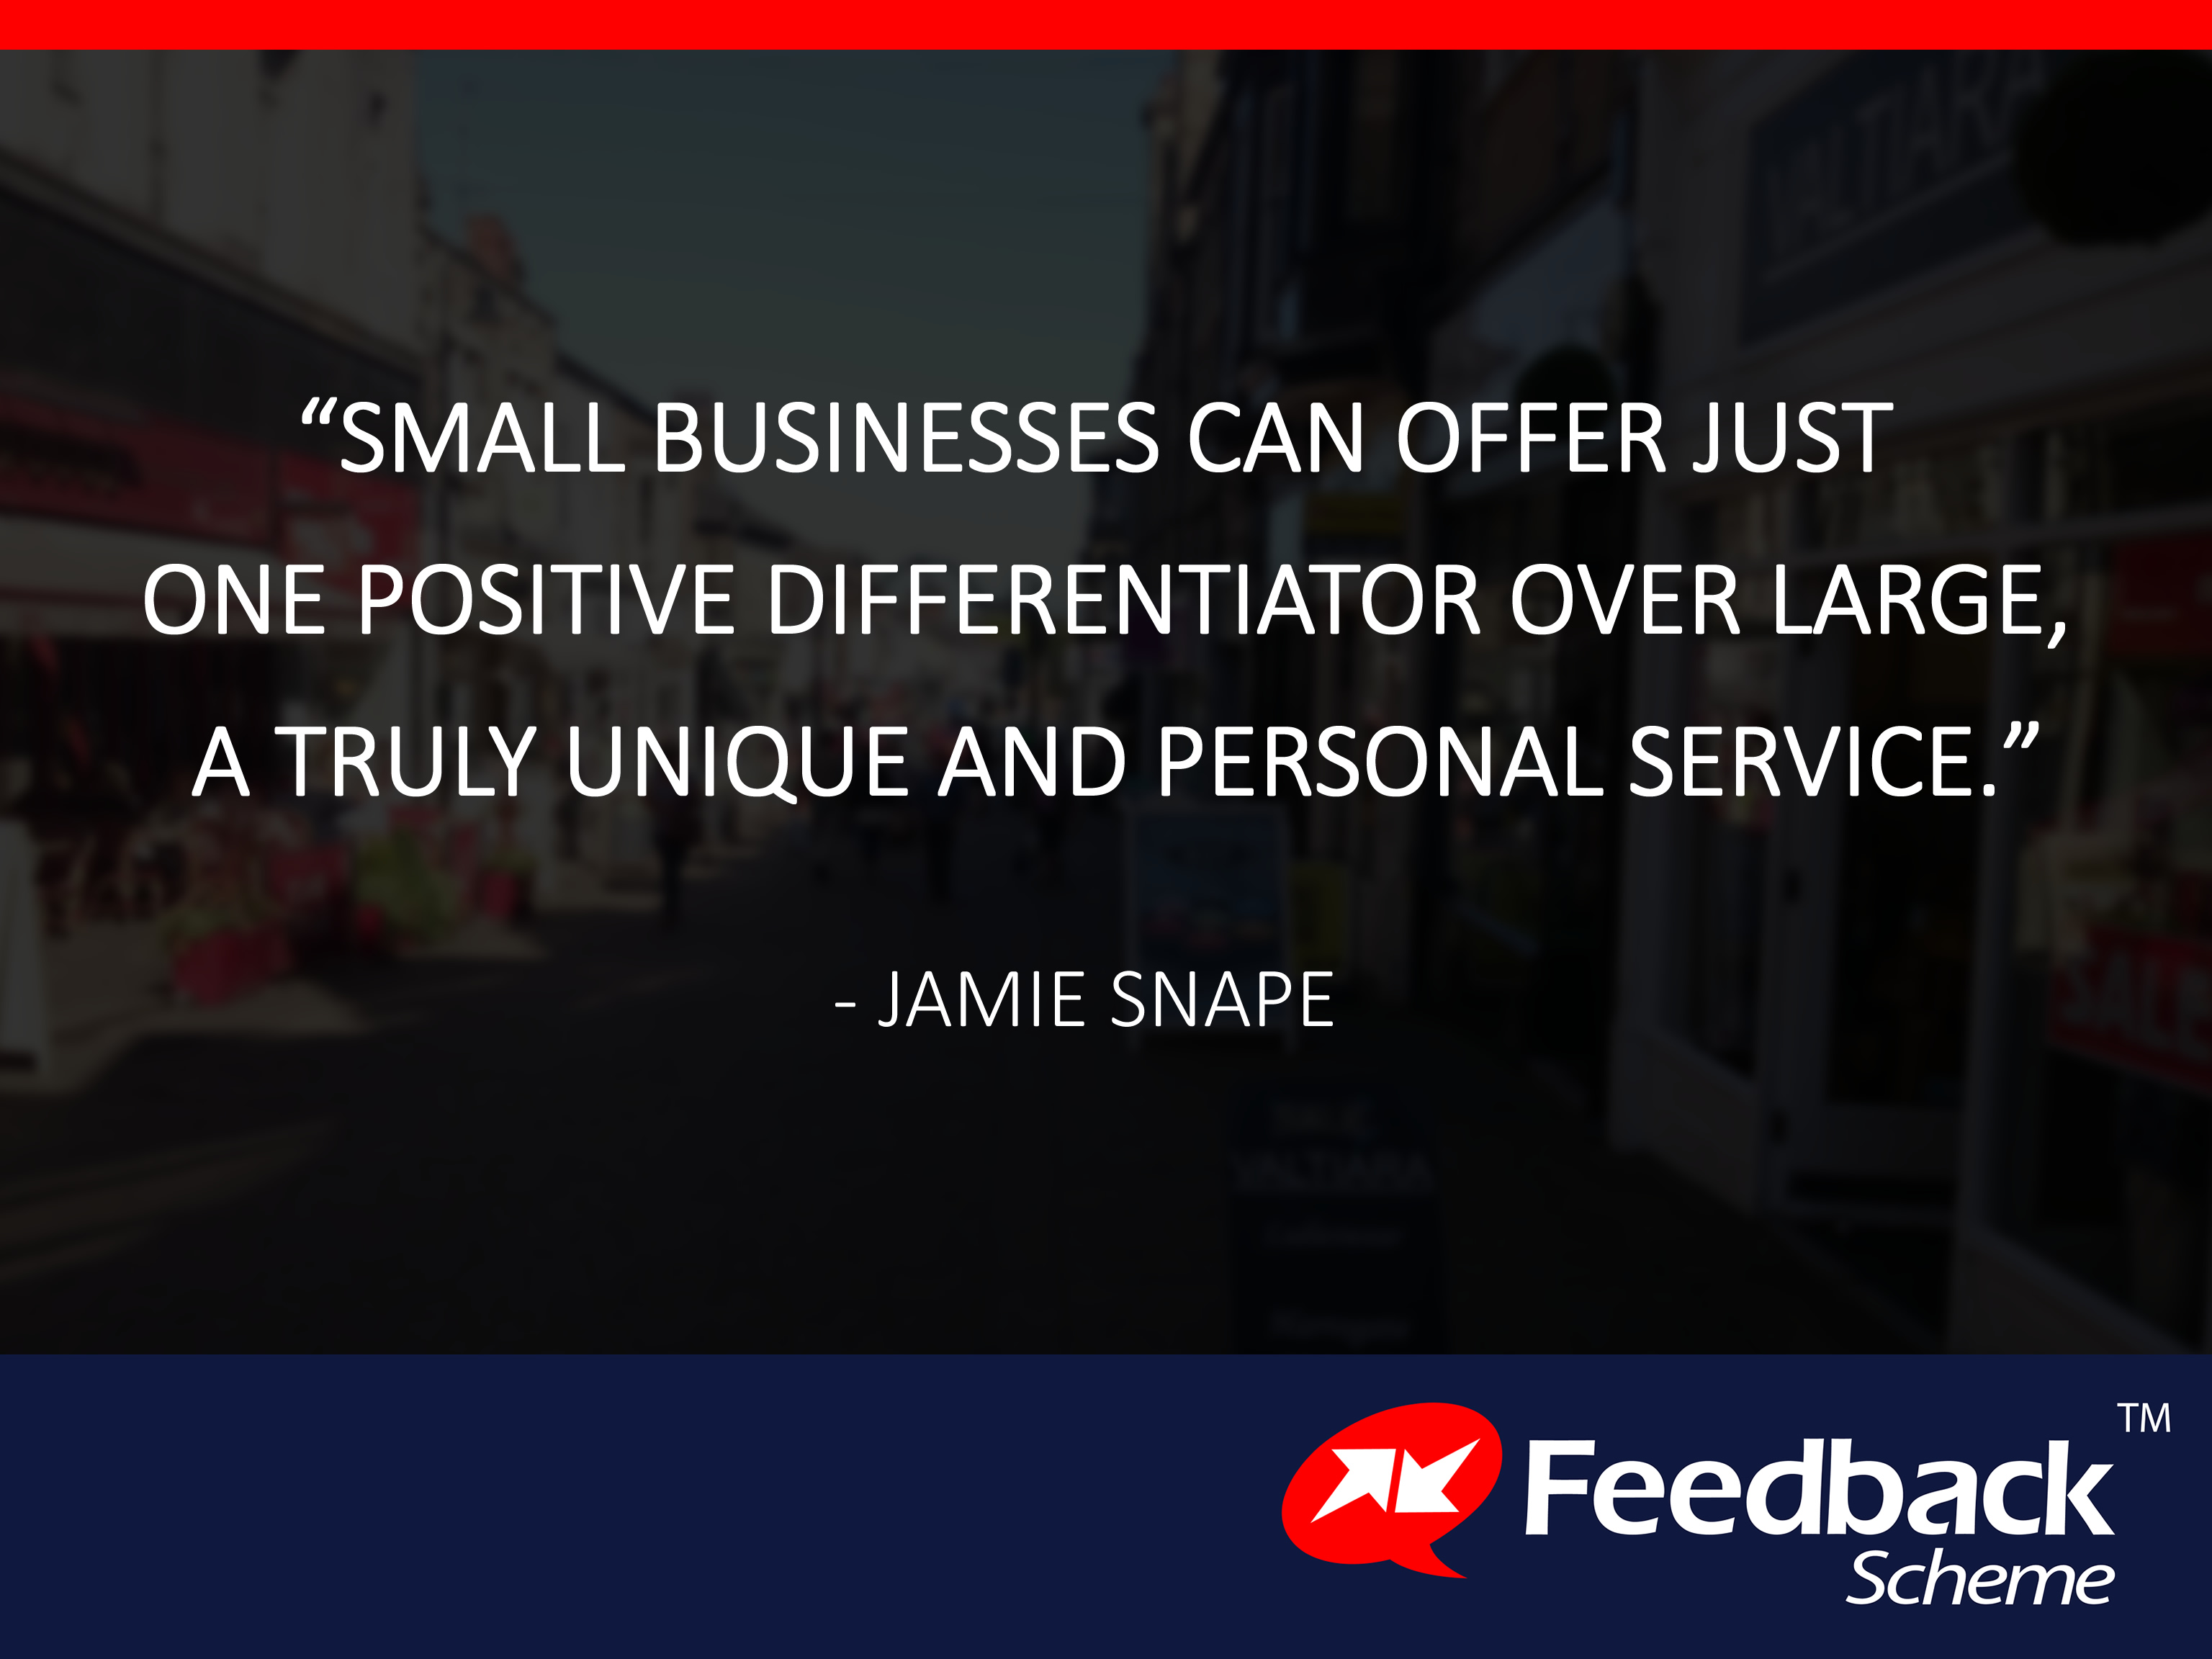 Small businesses can offer just one differentiator2